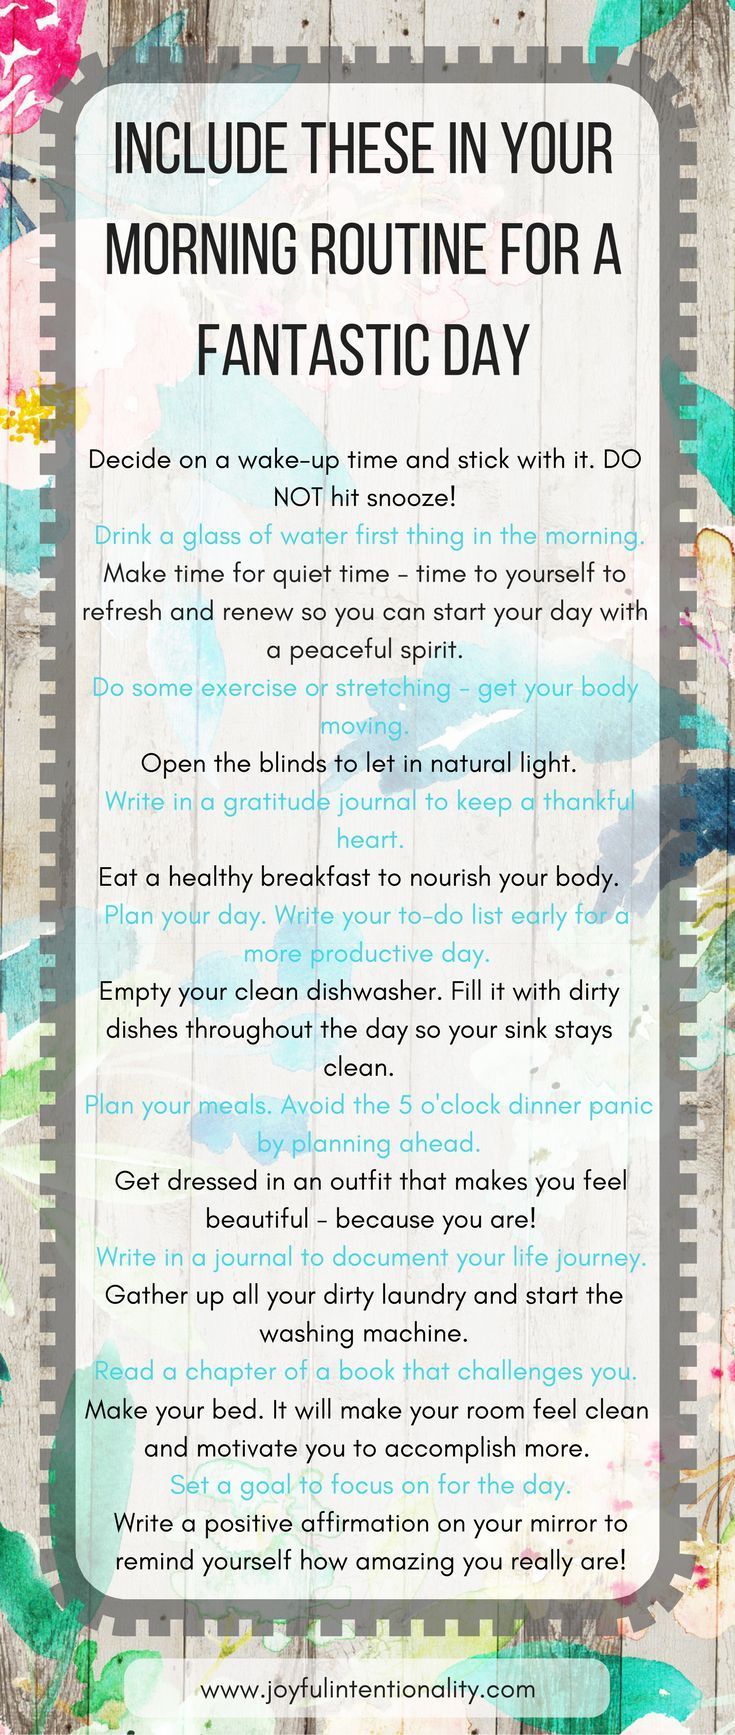 Become a productivity ninja and create the morning routine of your dreams! Have an awesome day when you follow these morning routine ideas | free printables | self-development | be awesome | positivity | intentional living | achieve greatness